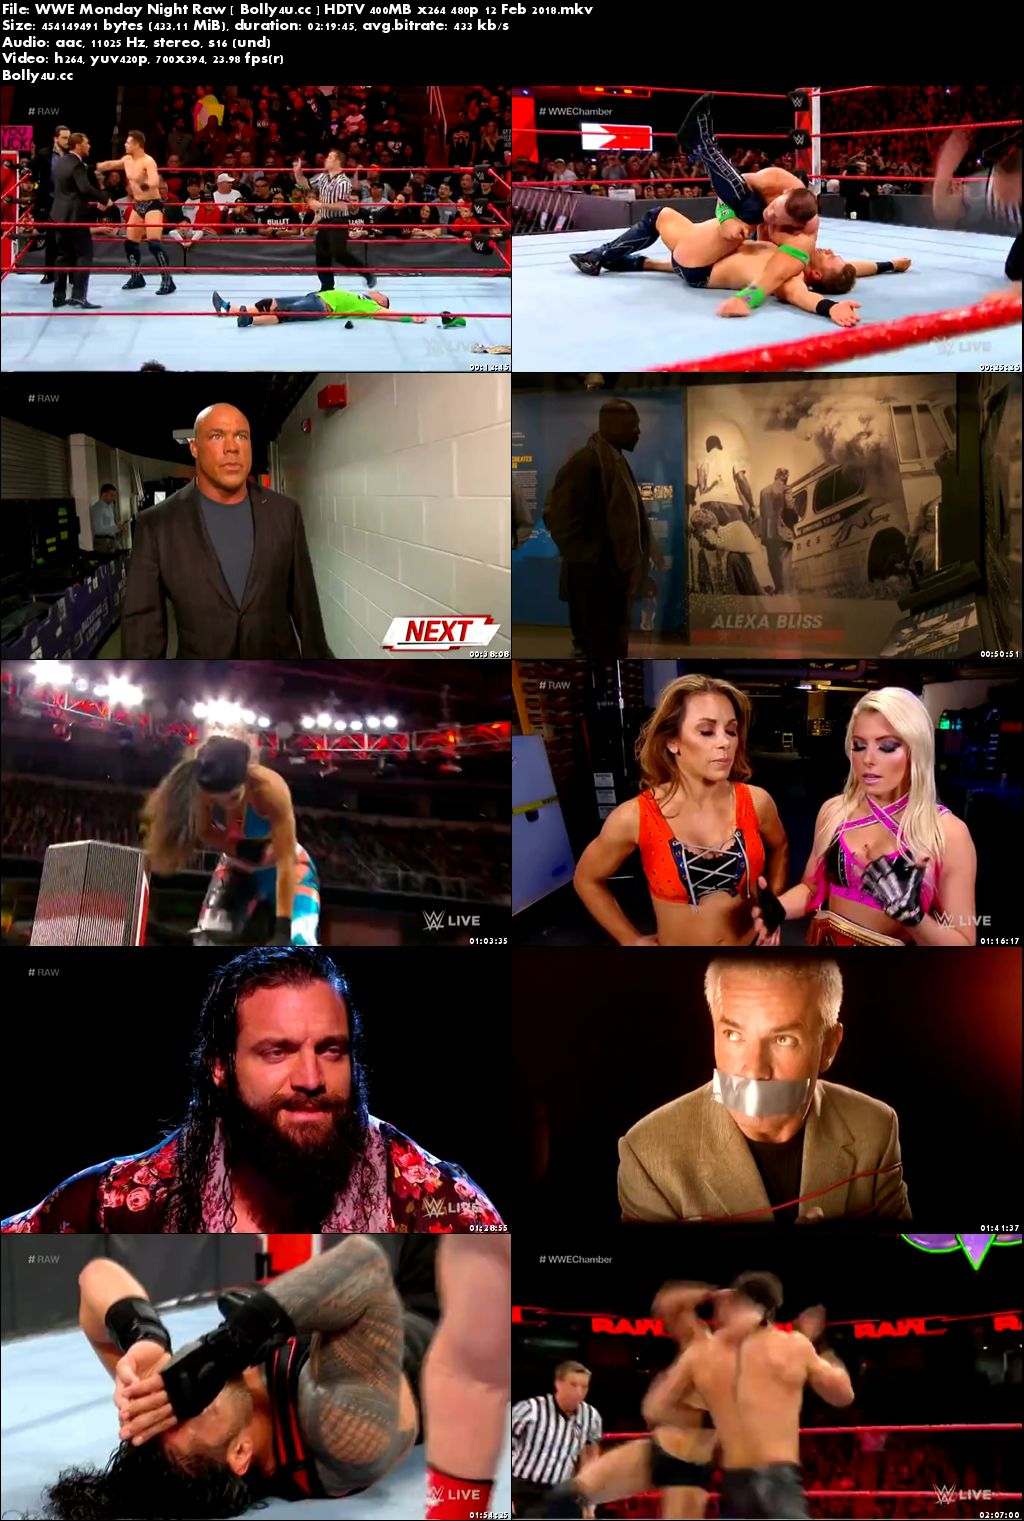 WWE Monday Night Raw HDTV 400MB 480p 12 Feb 2018 Download